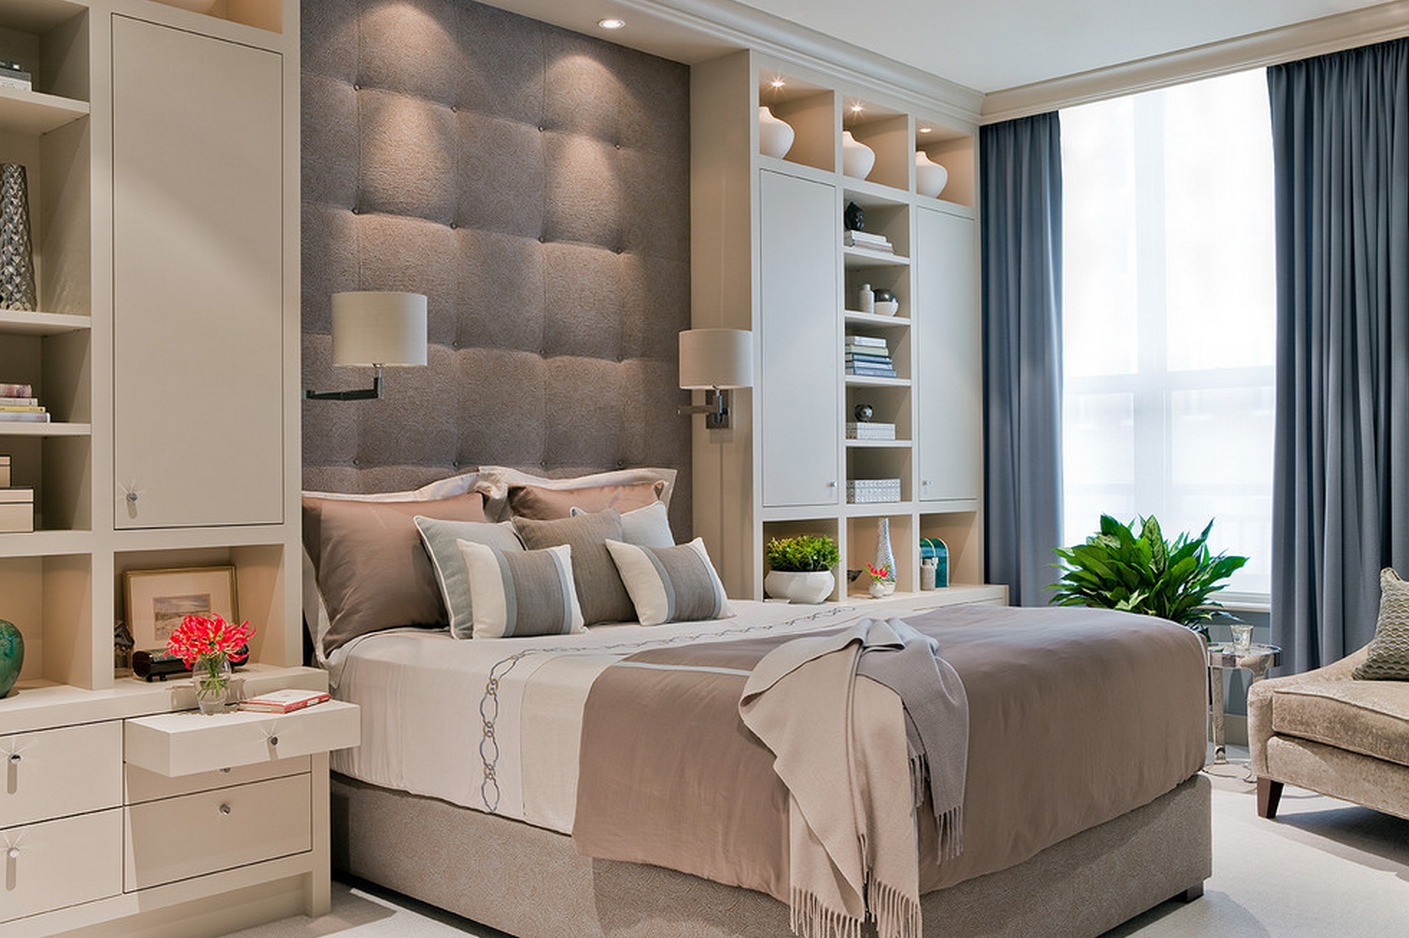 bedroom design If you are looking for inspiration on how to decorate your small bedroom, check out these fantastic space-saving design and furniture ideas.